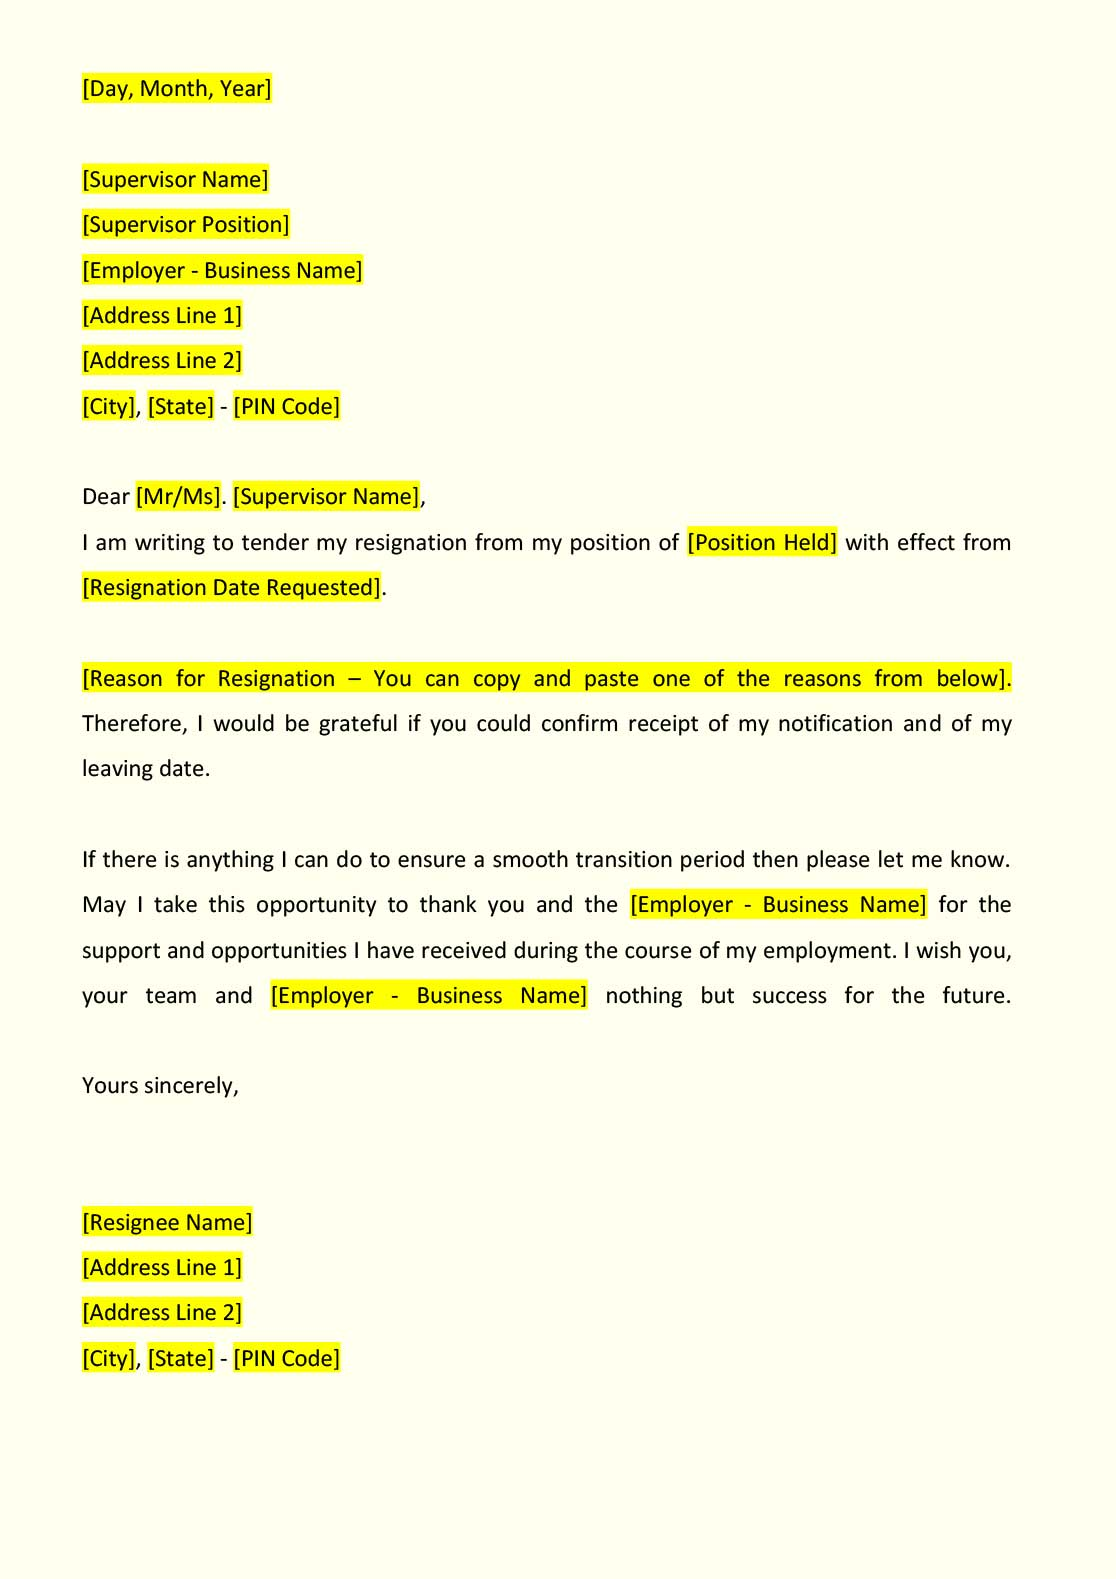 Resignation Letter Format   IndiaFilings   Document Center